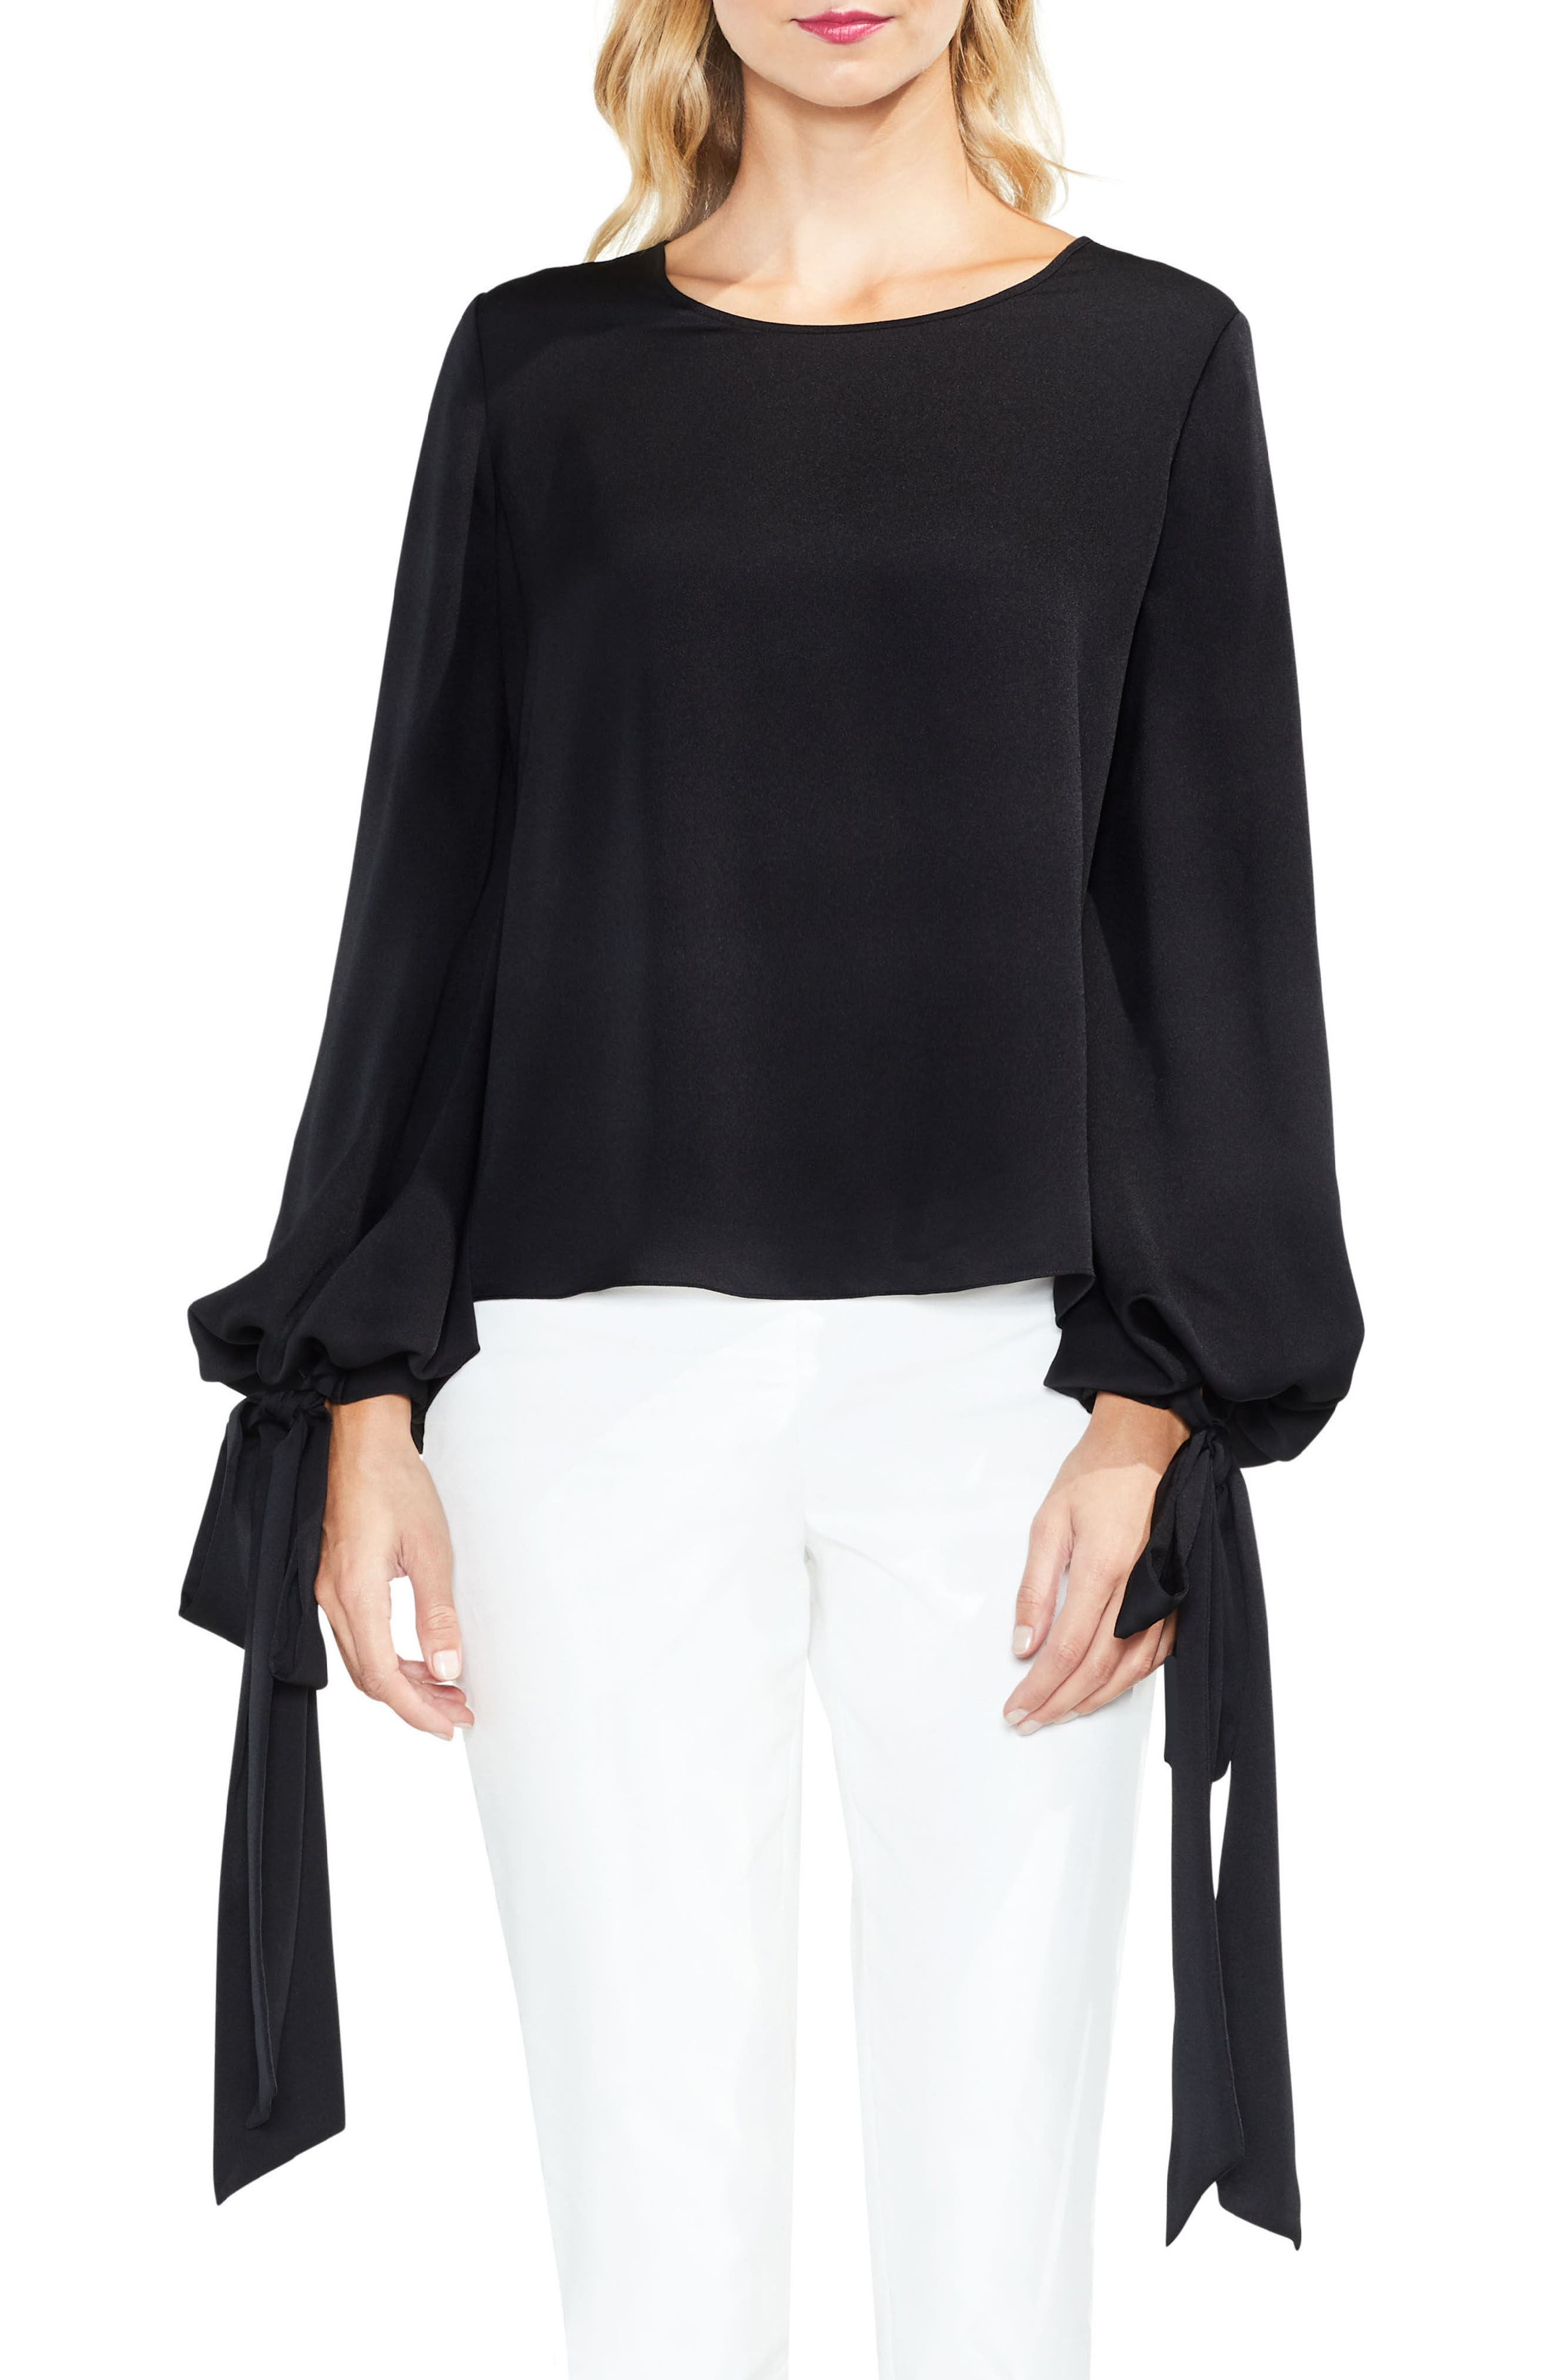 Main Image - Vince Camuto Tie Cuff Bubble Sleeve Blouse (Regular & Petite)